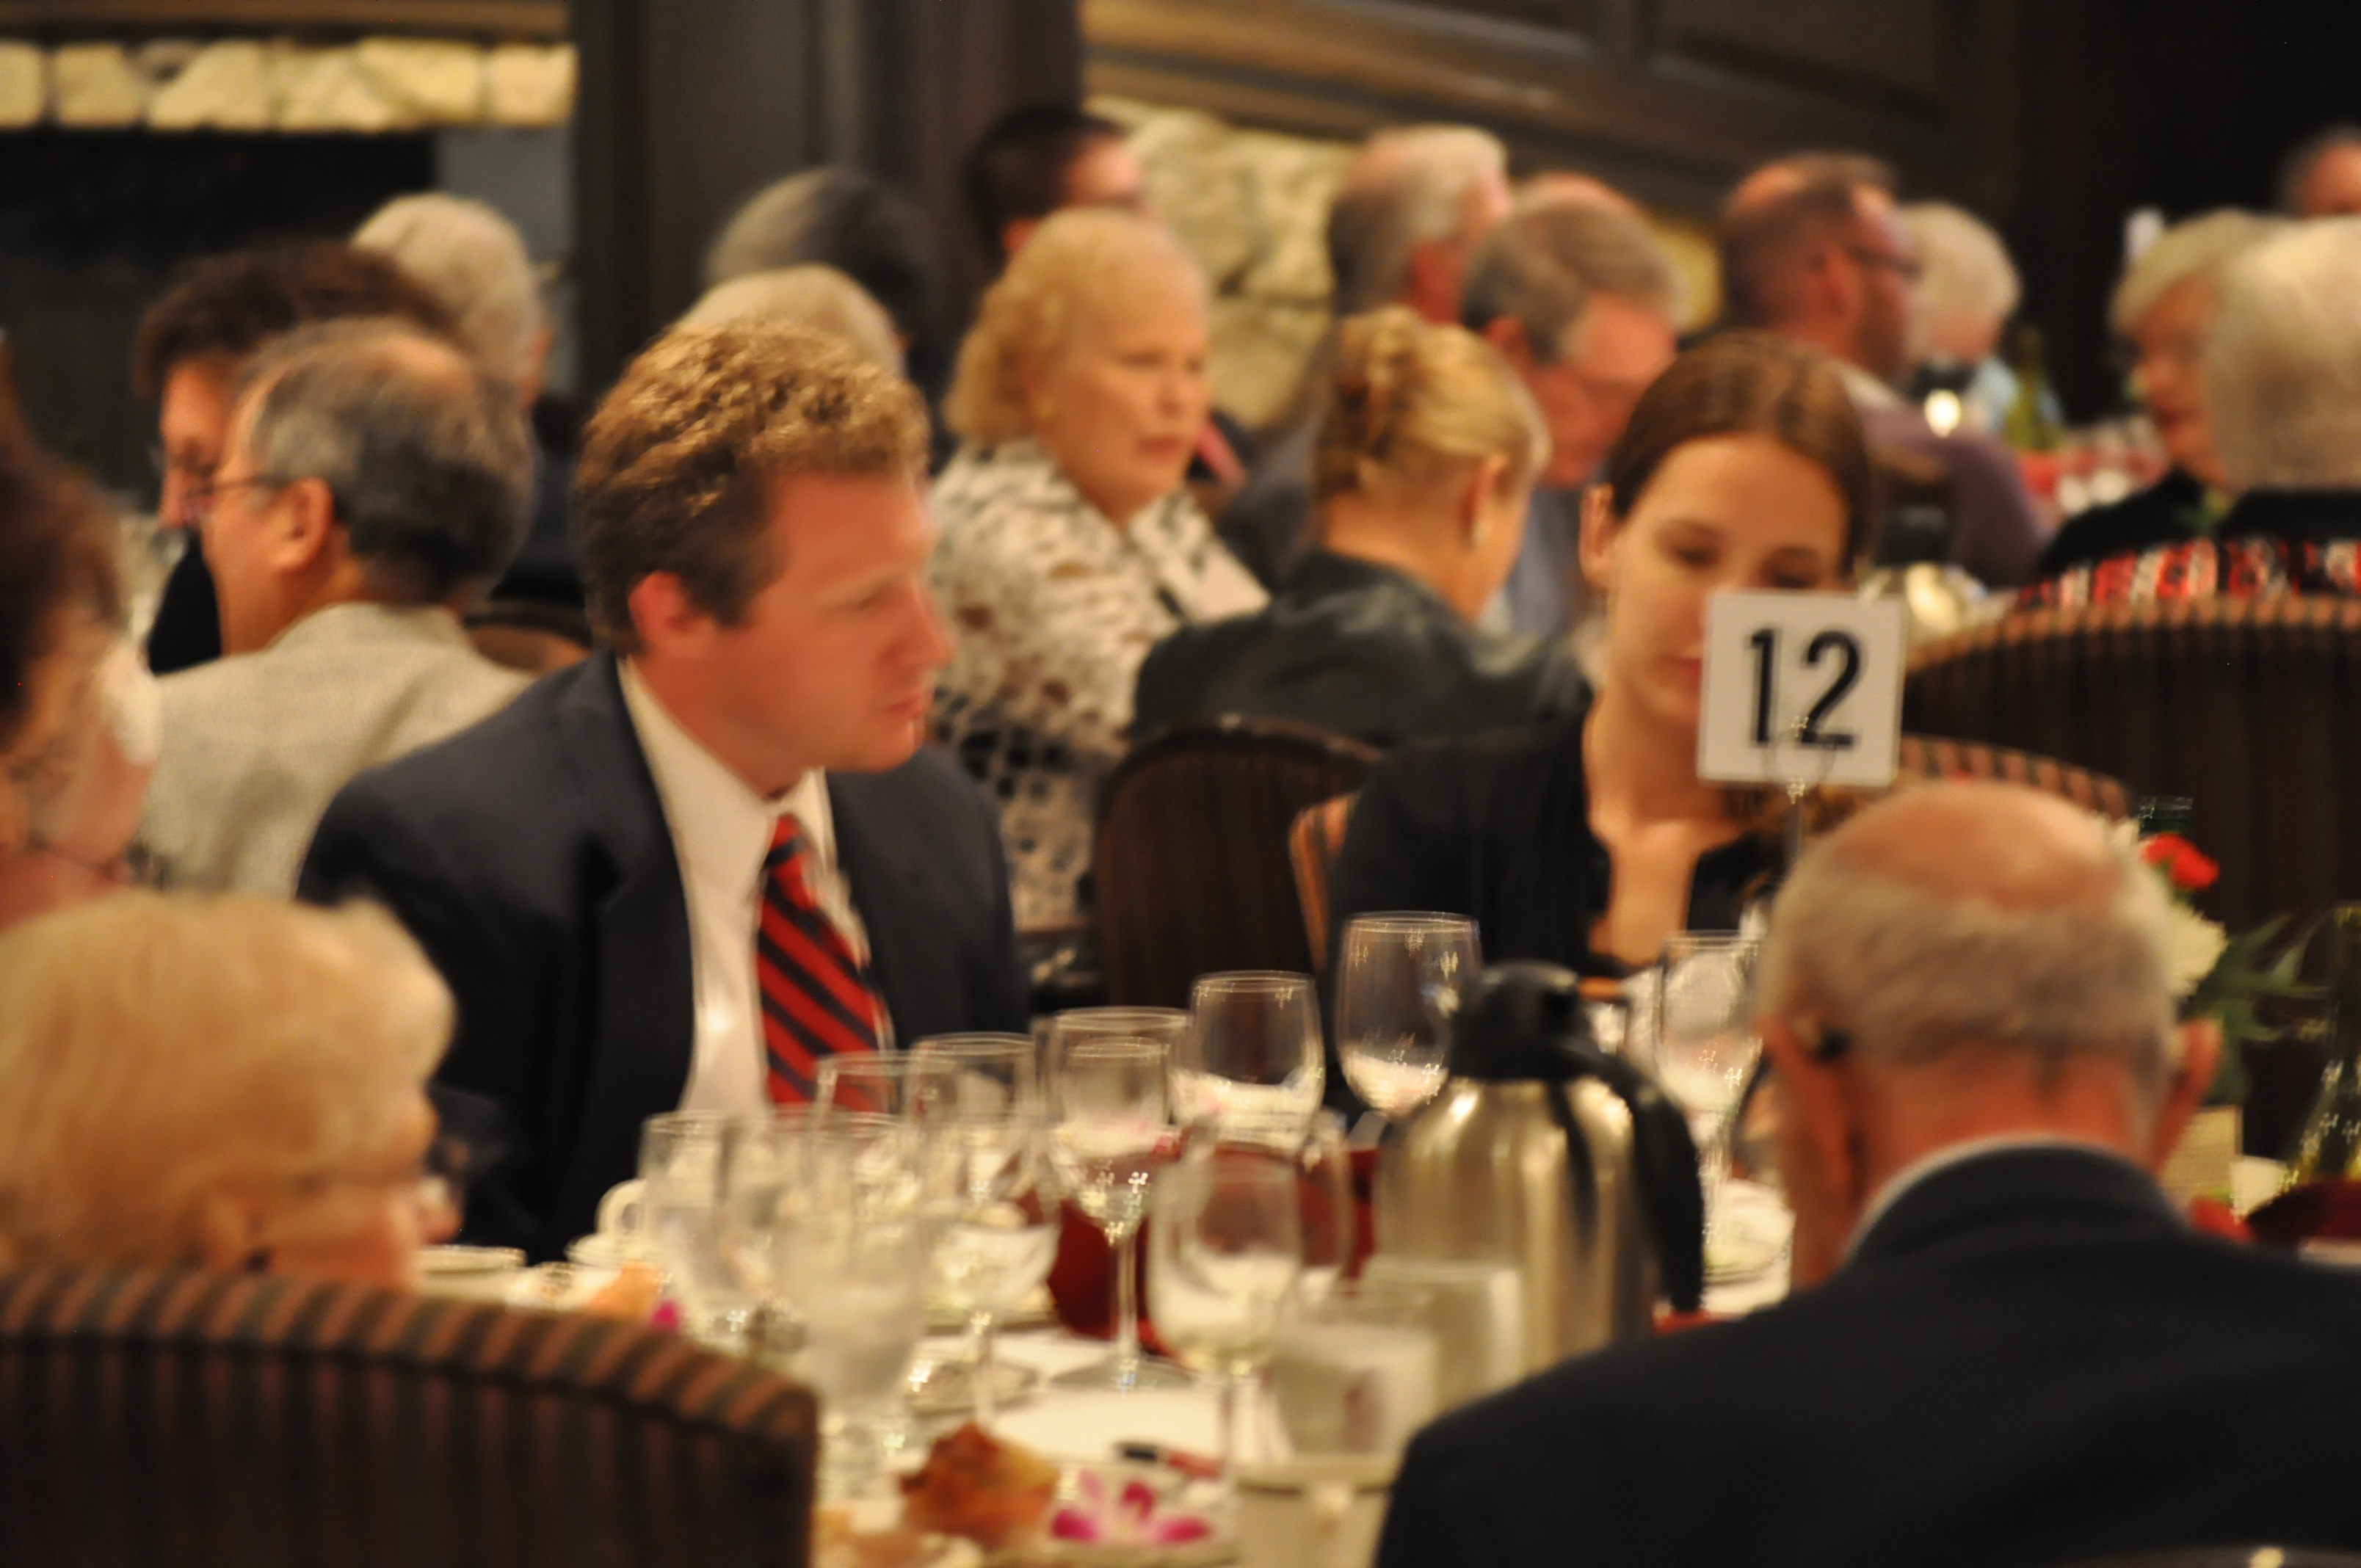 People at a table eating and listening during the Benefit Dinner